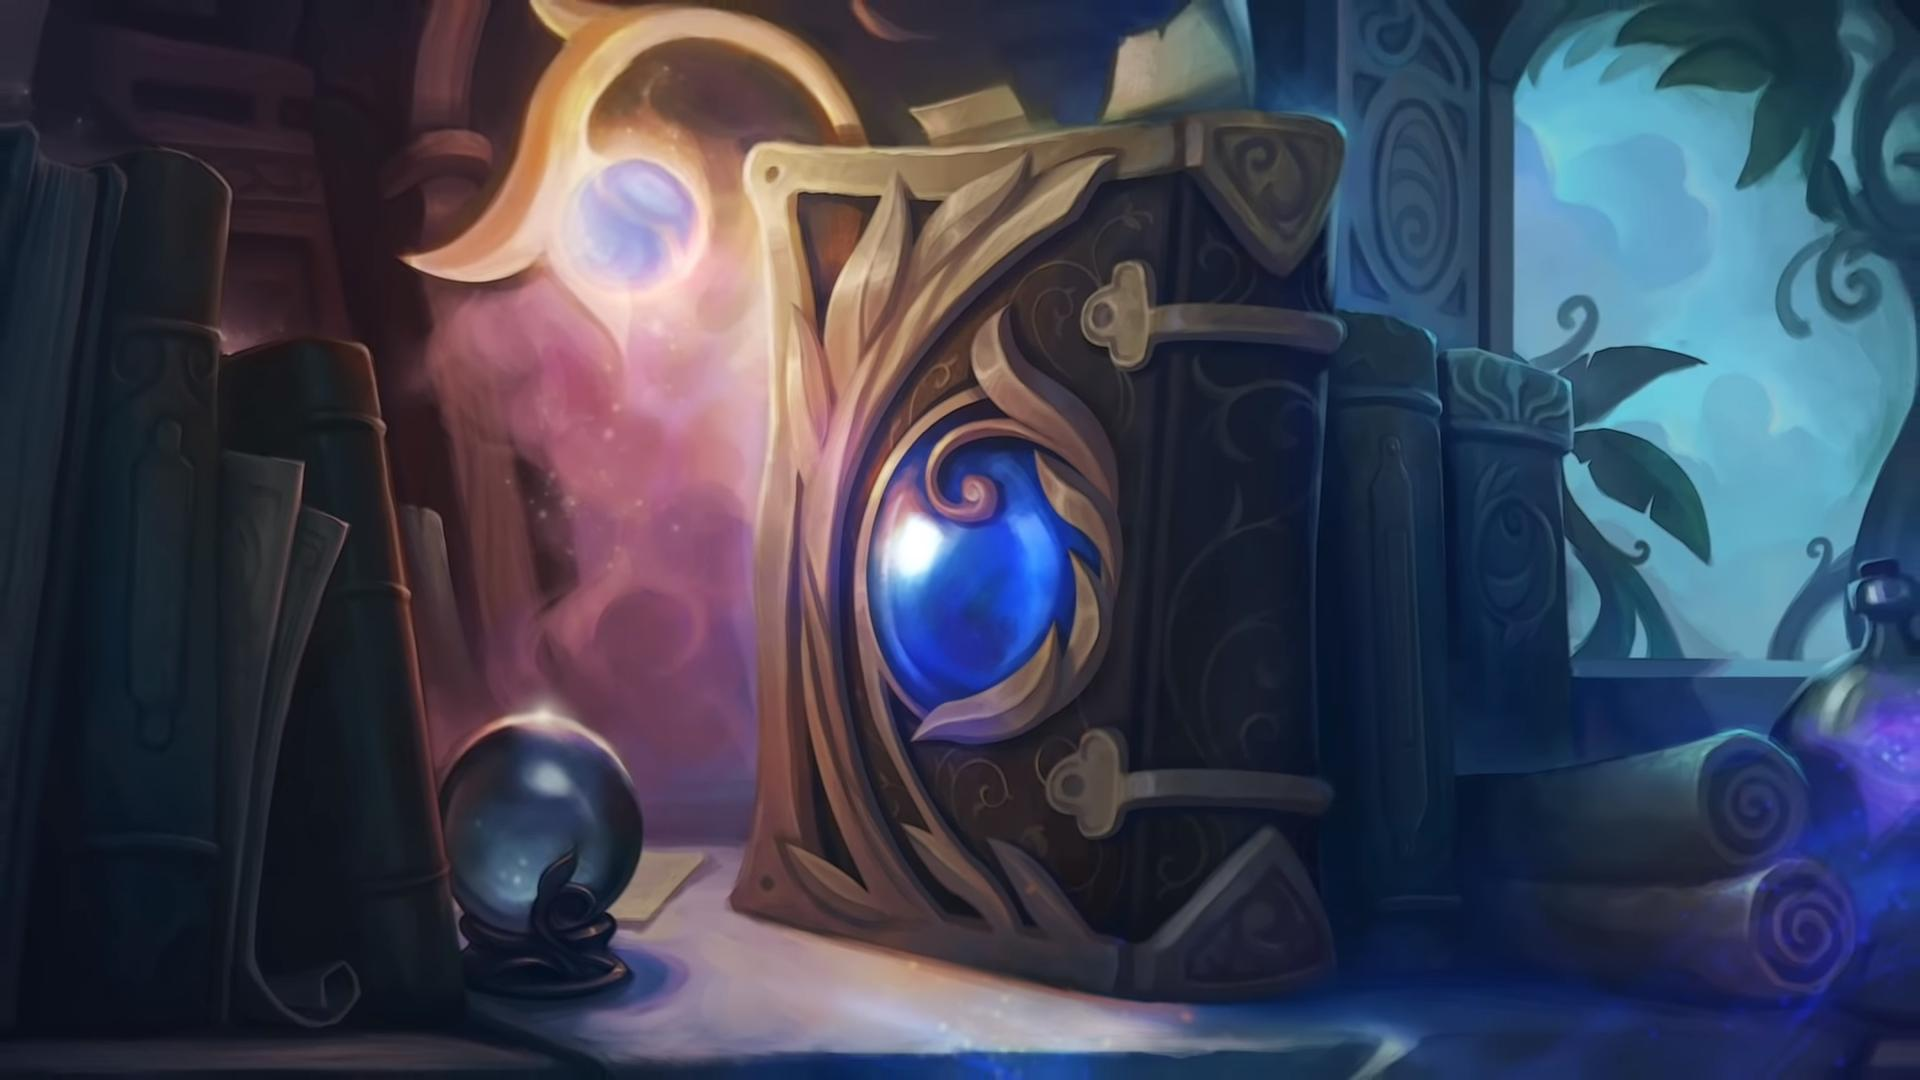 League's Season 9 teaser trailer introduces a new mage support